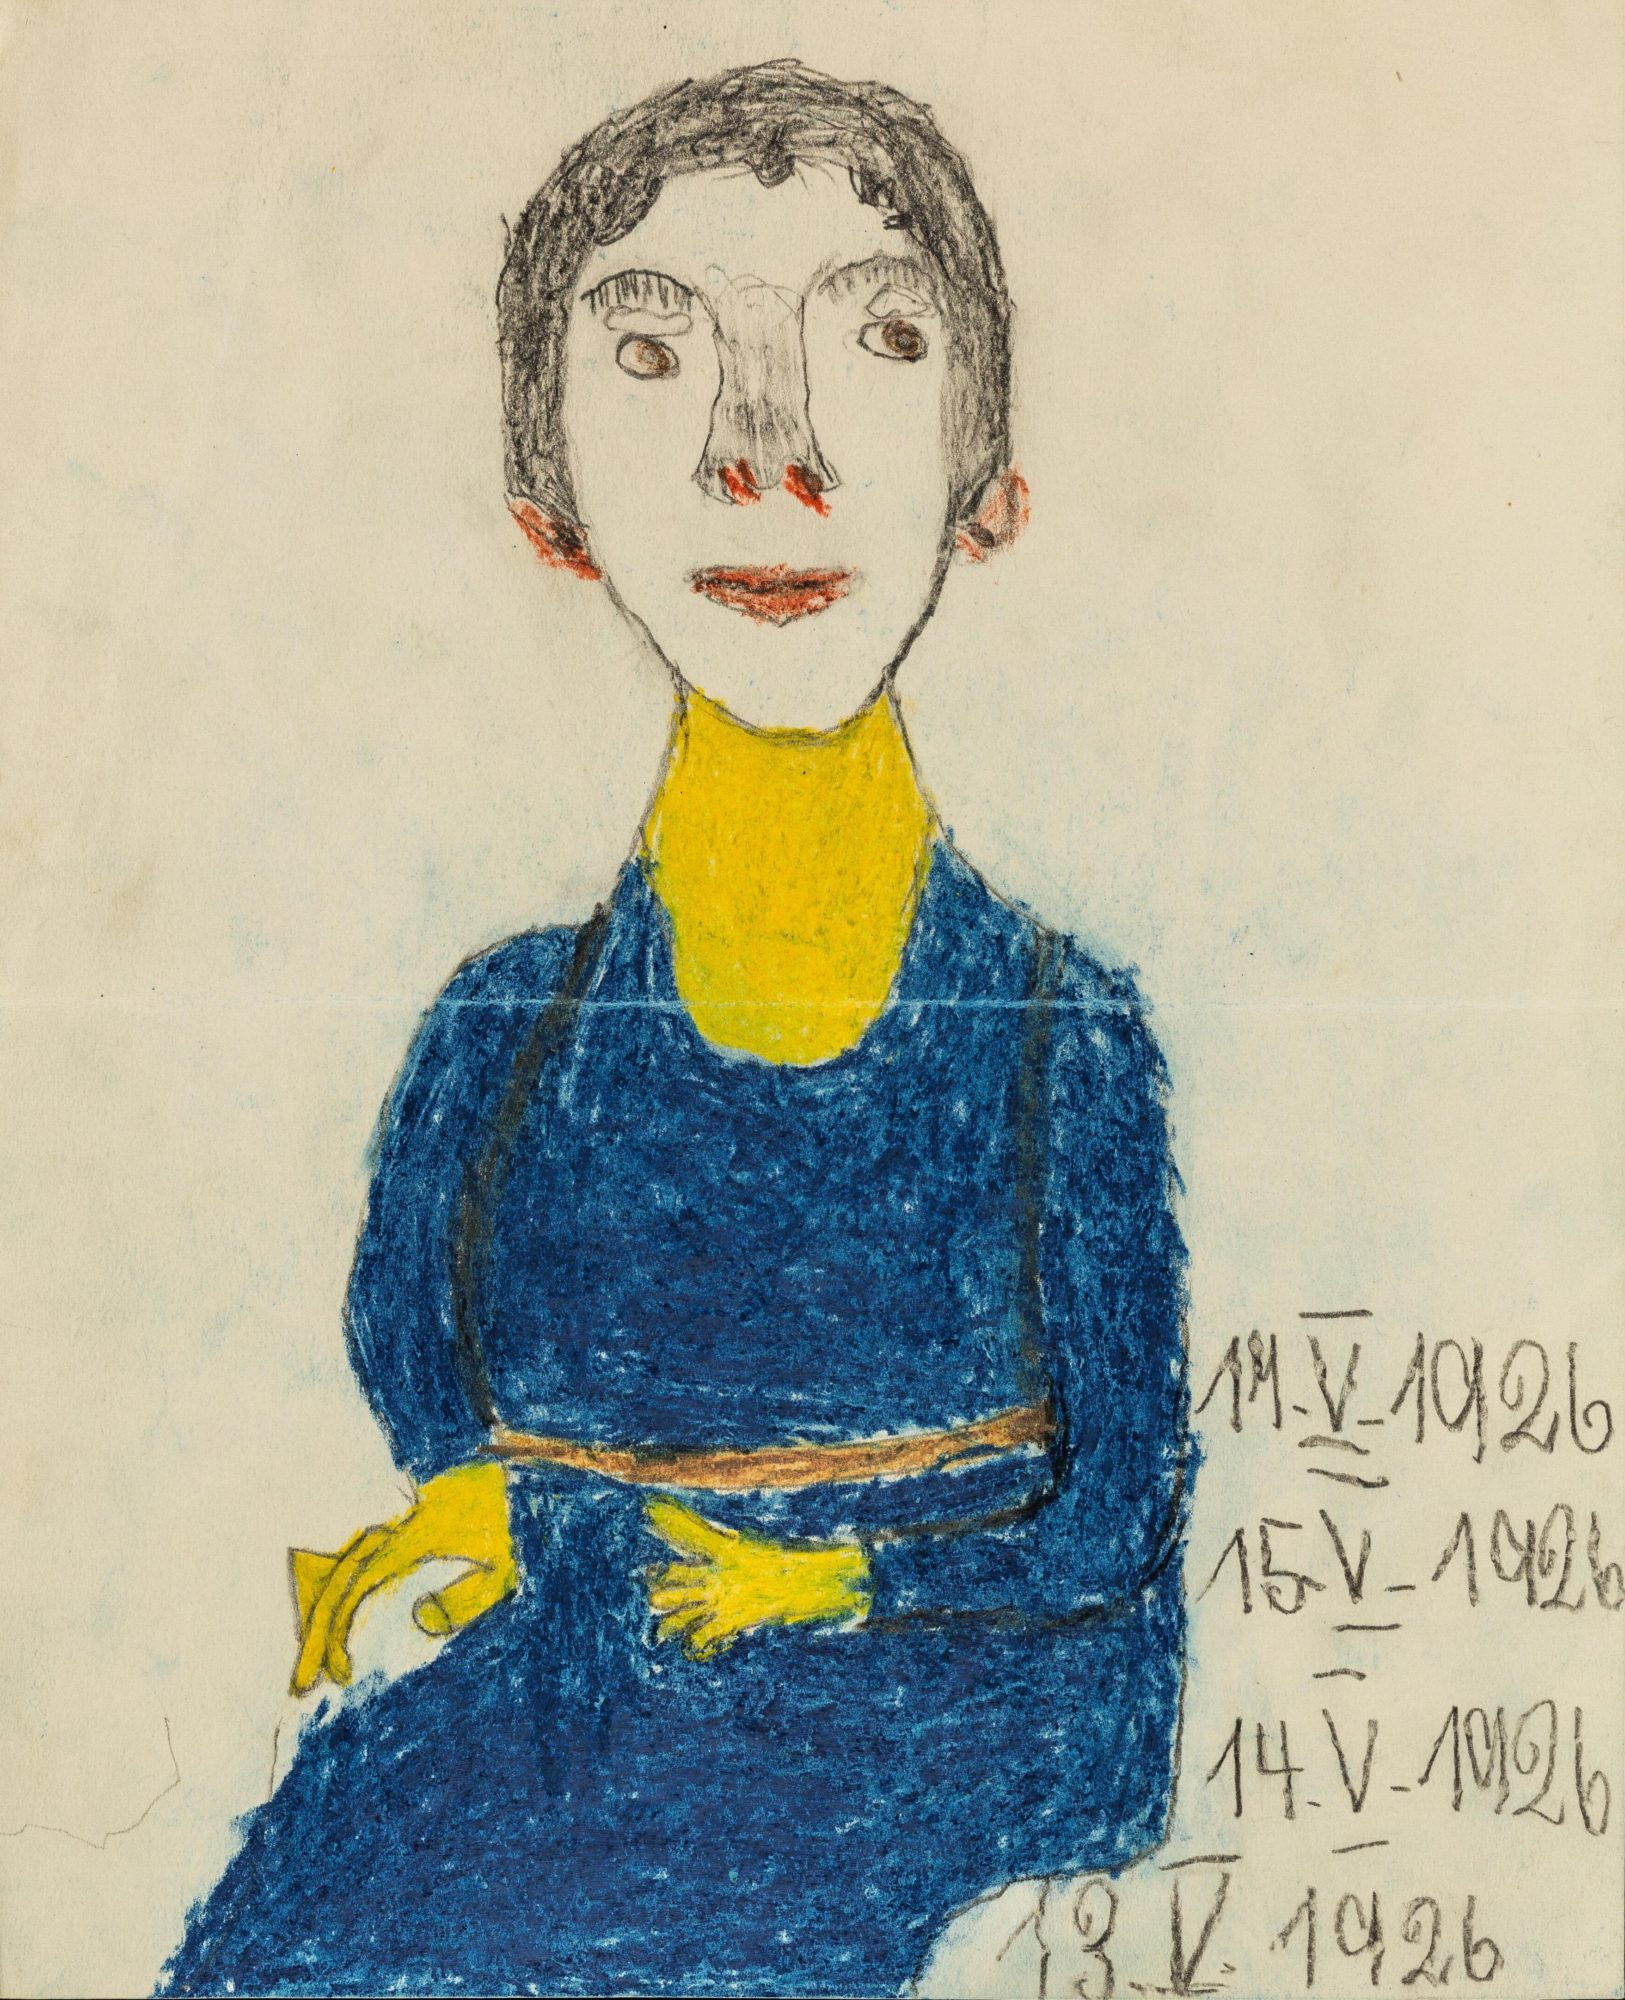 A drawing of Melanie Klein by one of her patients in 1926.